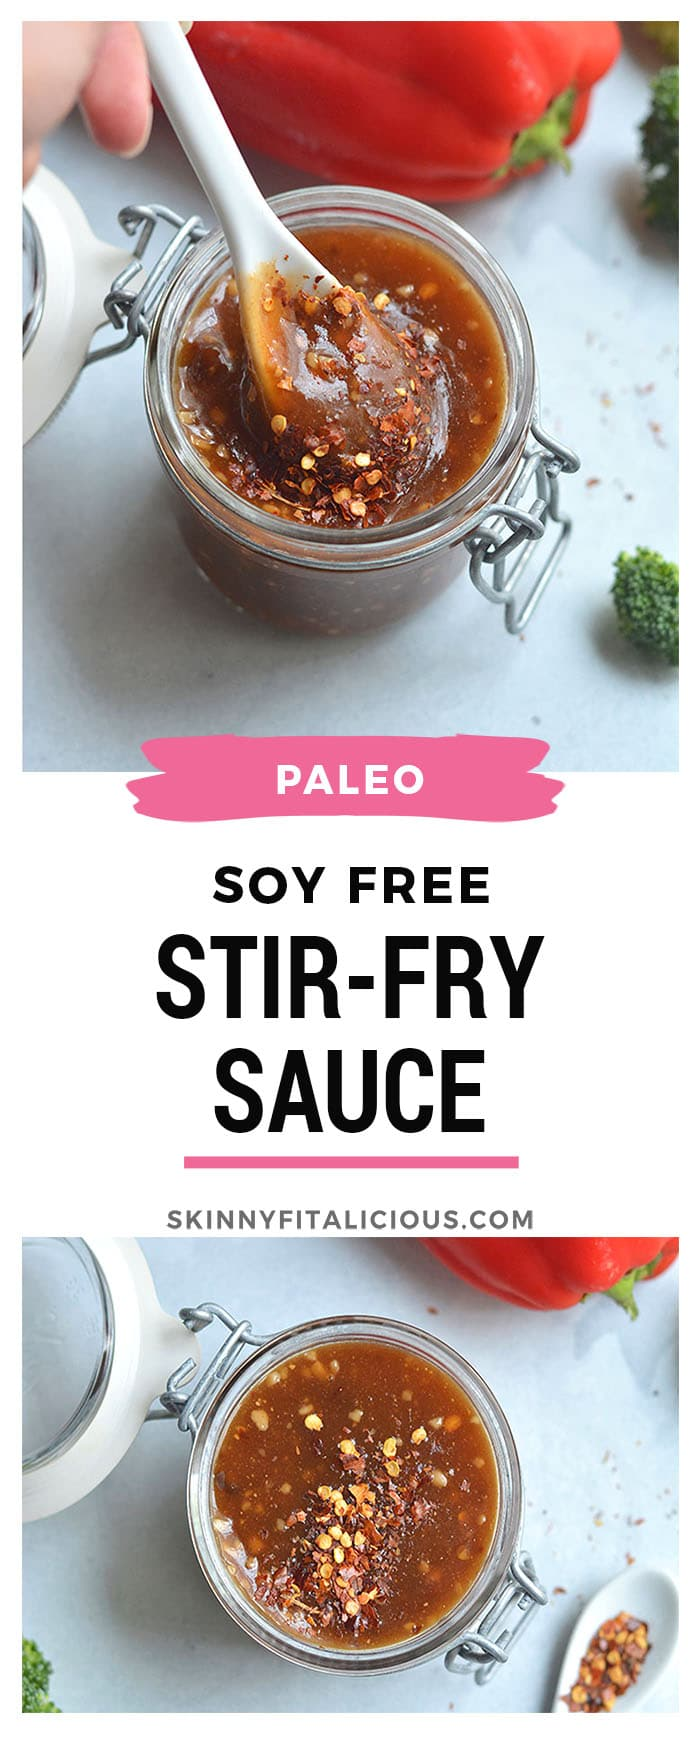 This Soy Free Stir-Fry Sauce is low in sugar, gluten free and quick to make. Make it ahead of time and easily add it to any stir-fry recipe you for a quick and nourishing lunch ordinner. Vegan + Gluten Free + Low Calorie + Paleo